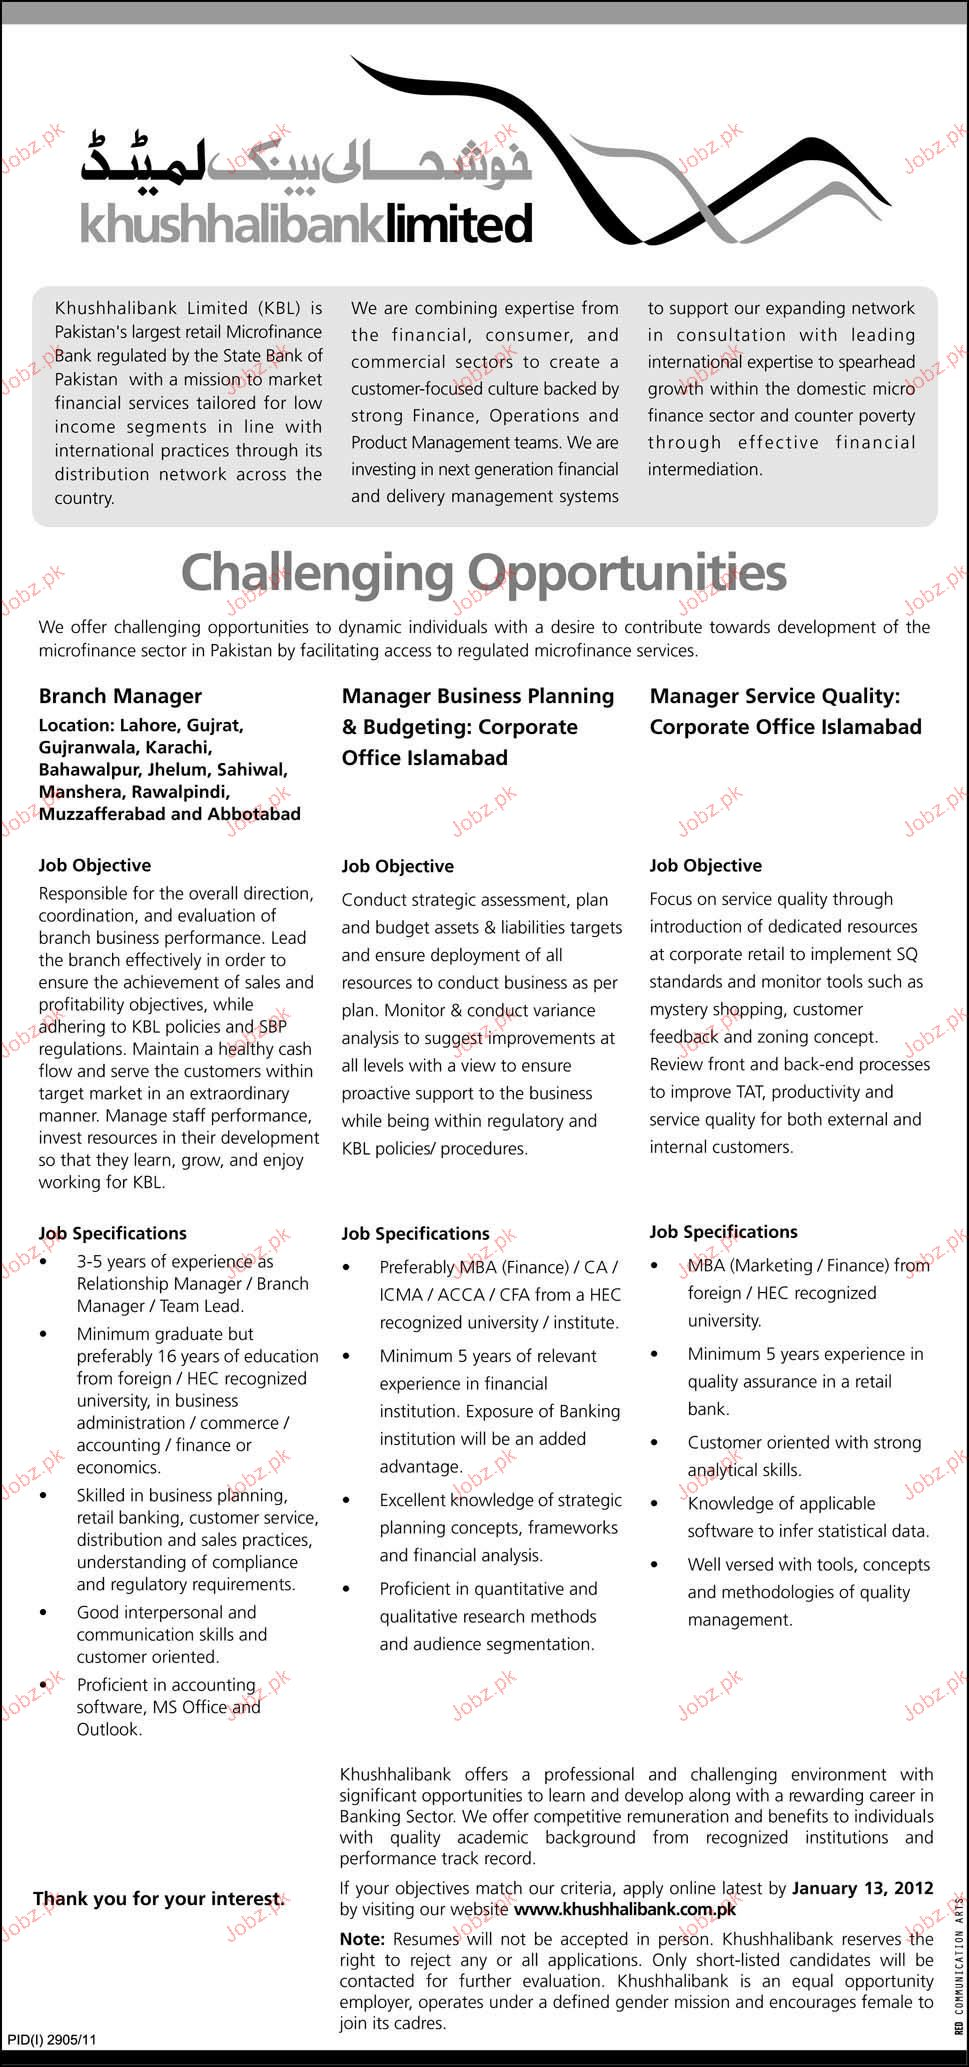 Branch Manager, Manager Business Planning Required